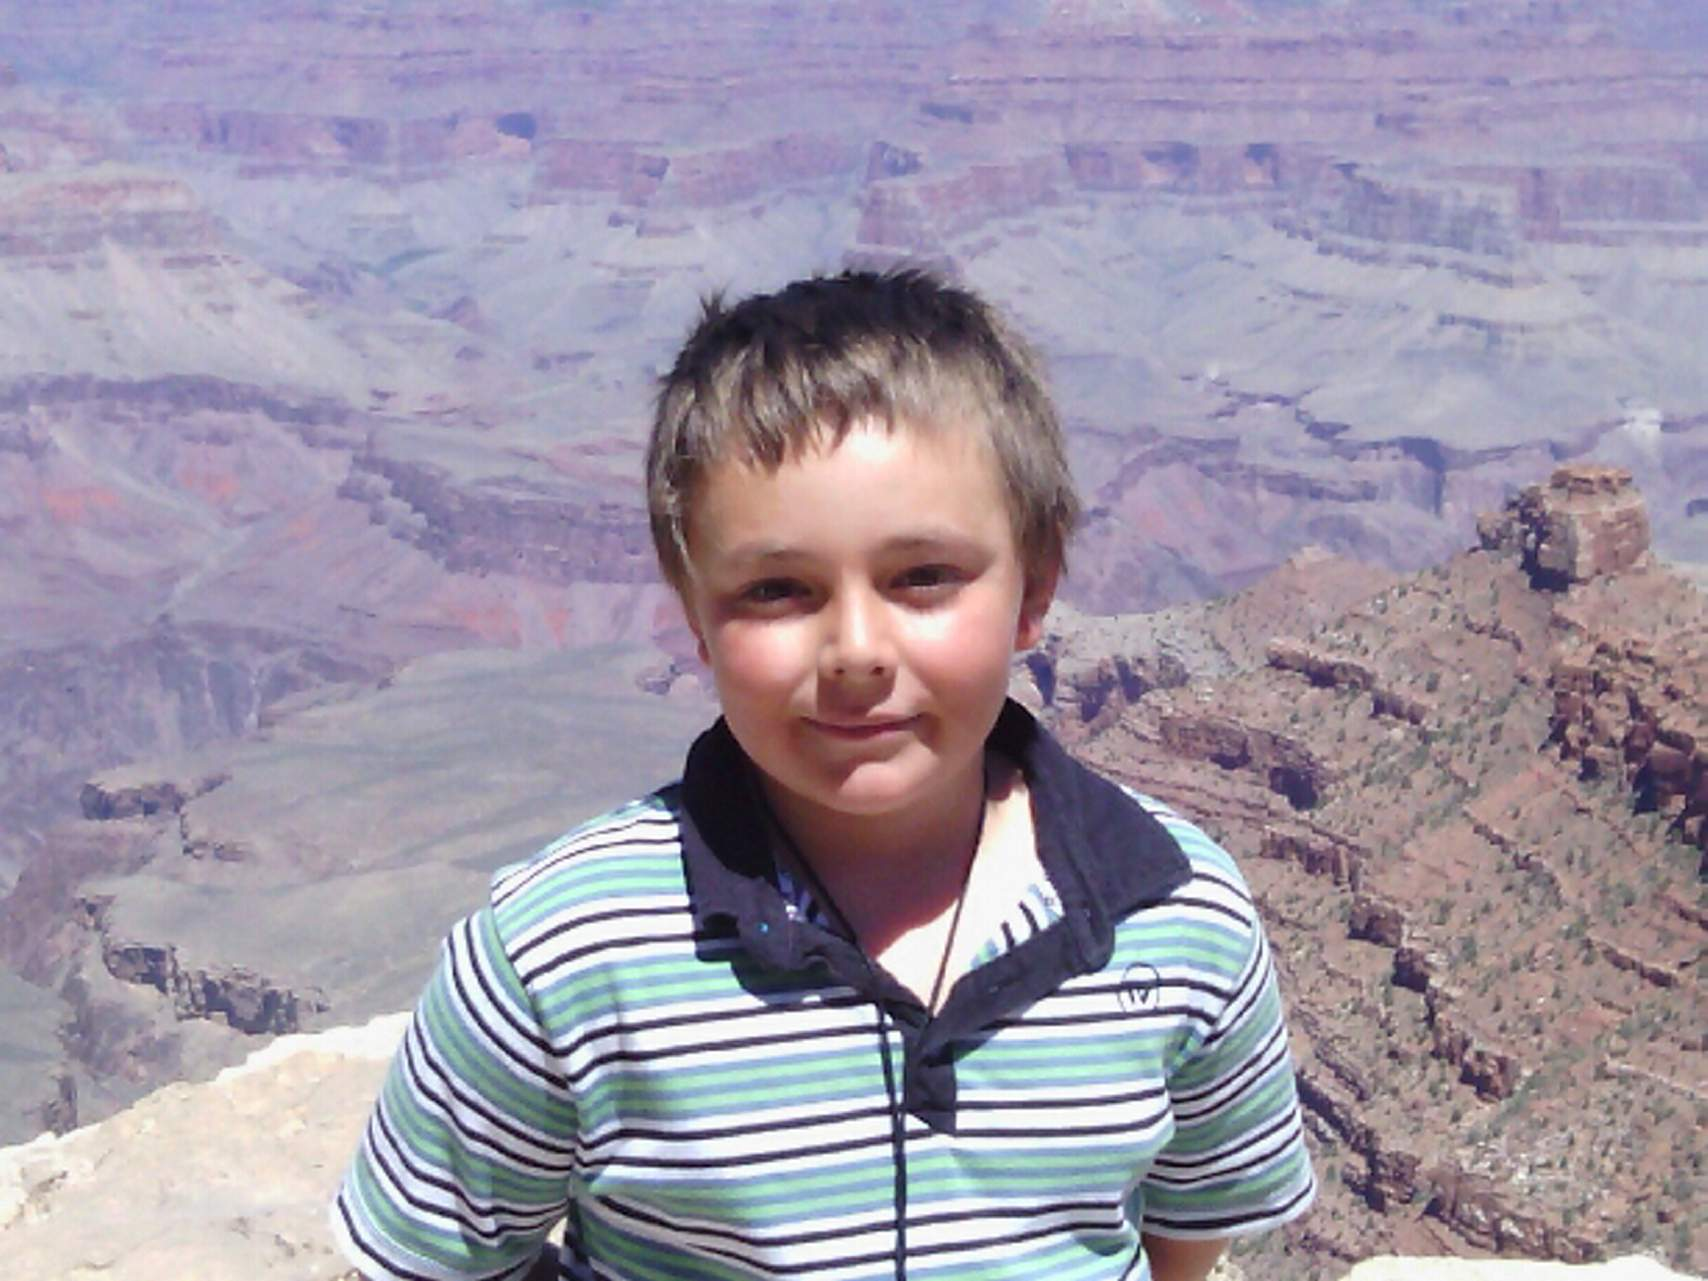 Nine-year-old Keaton Hankins-Benge, pictured at Grand Canyon National Park  last summer, had reconstructive surgery on his face this week after a  neighbor's ...